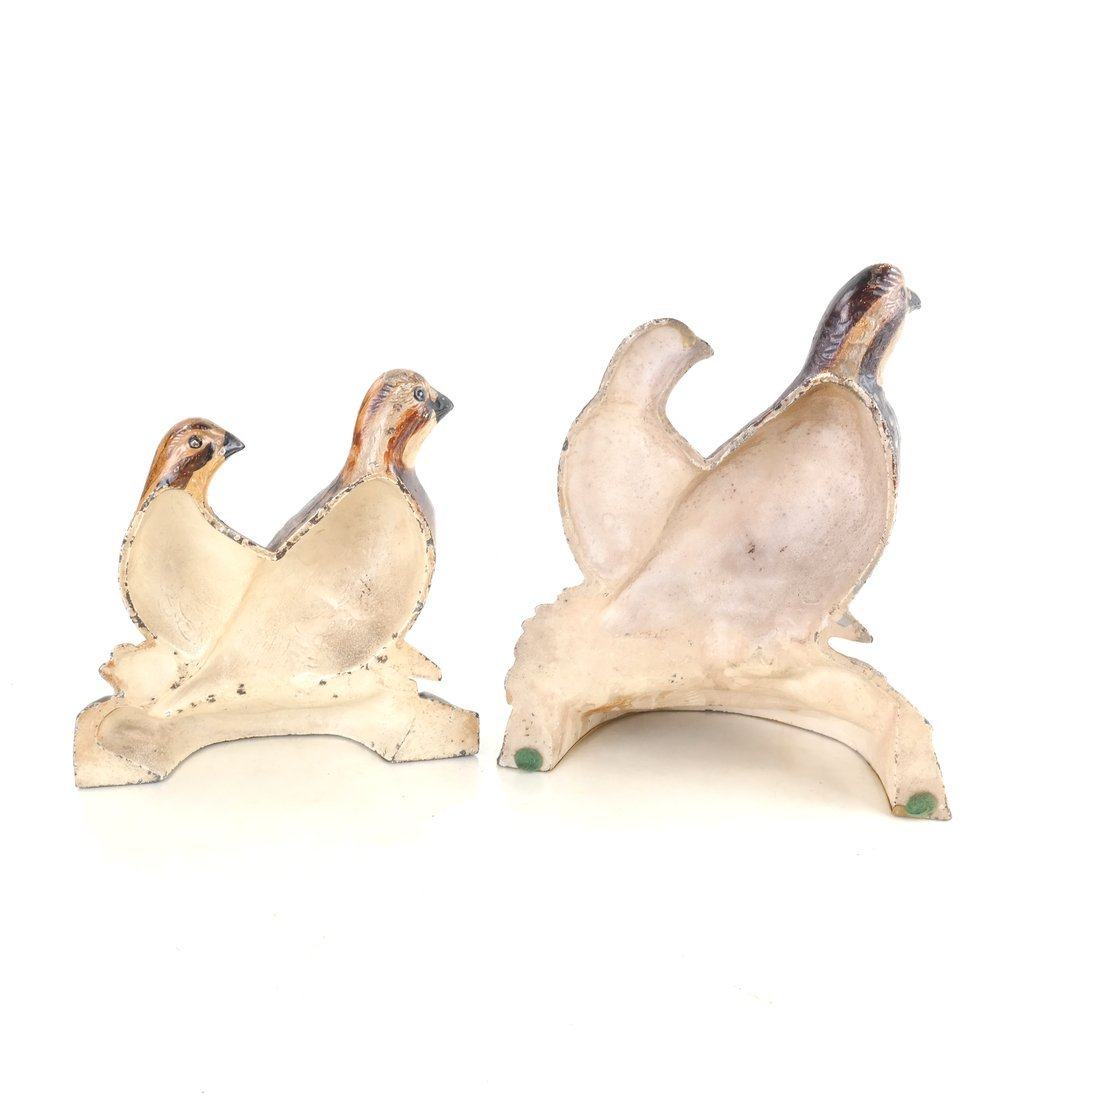 Two Painted Cast Iron Quail Doorstops - 2